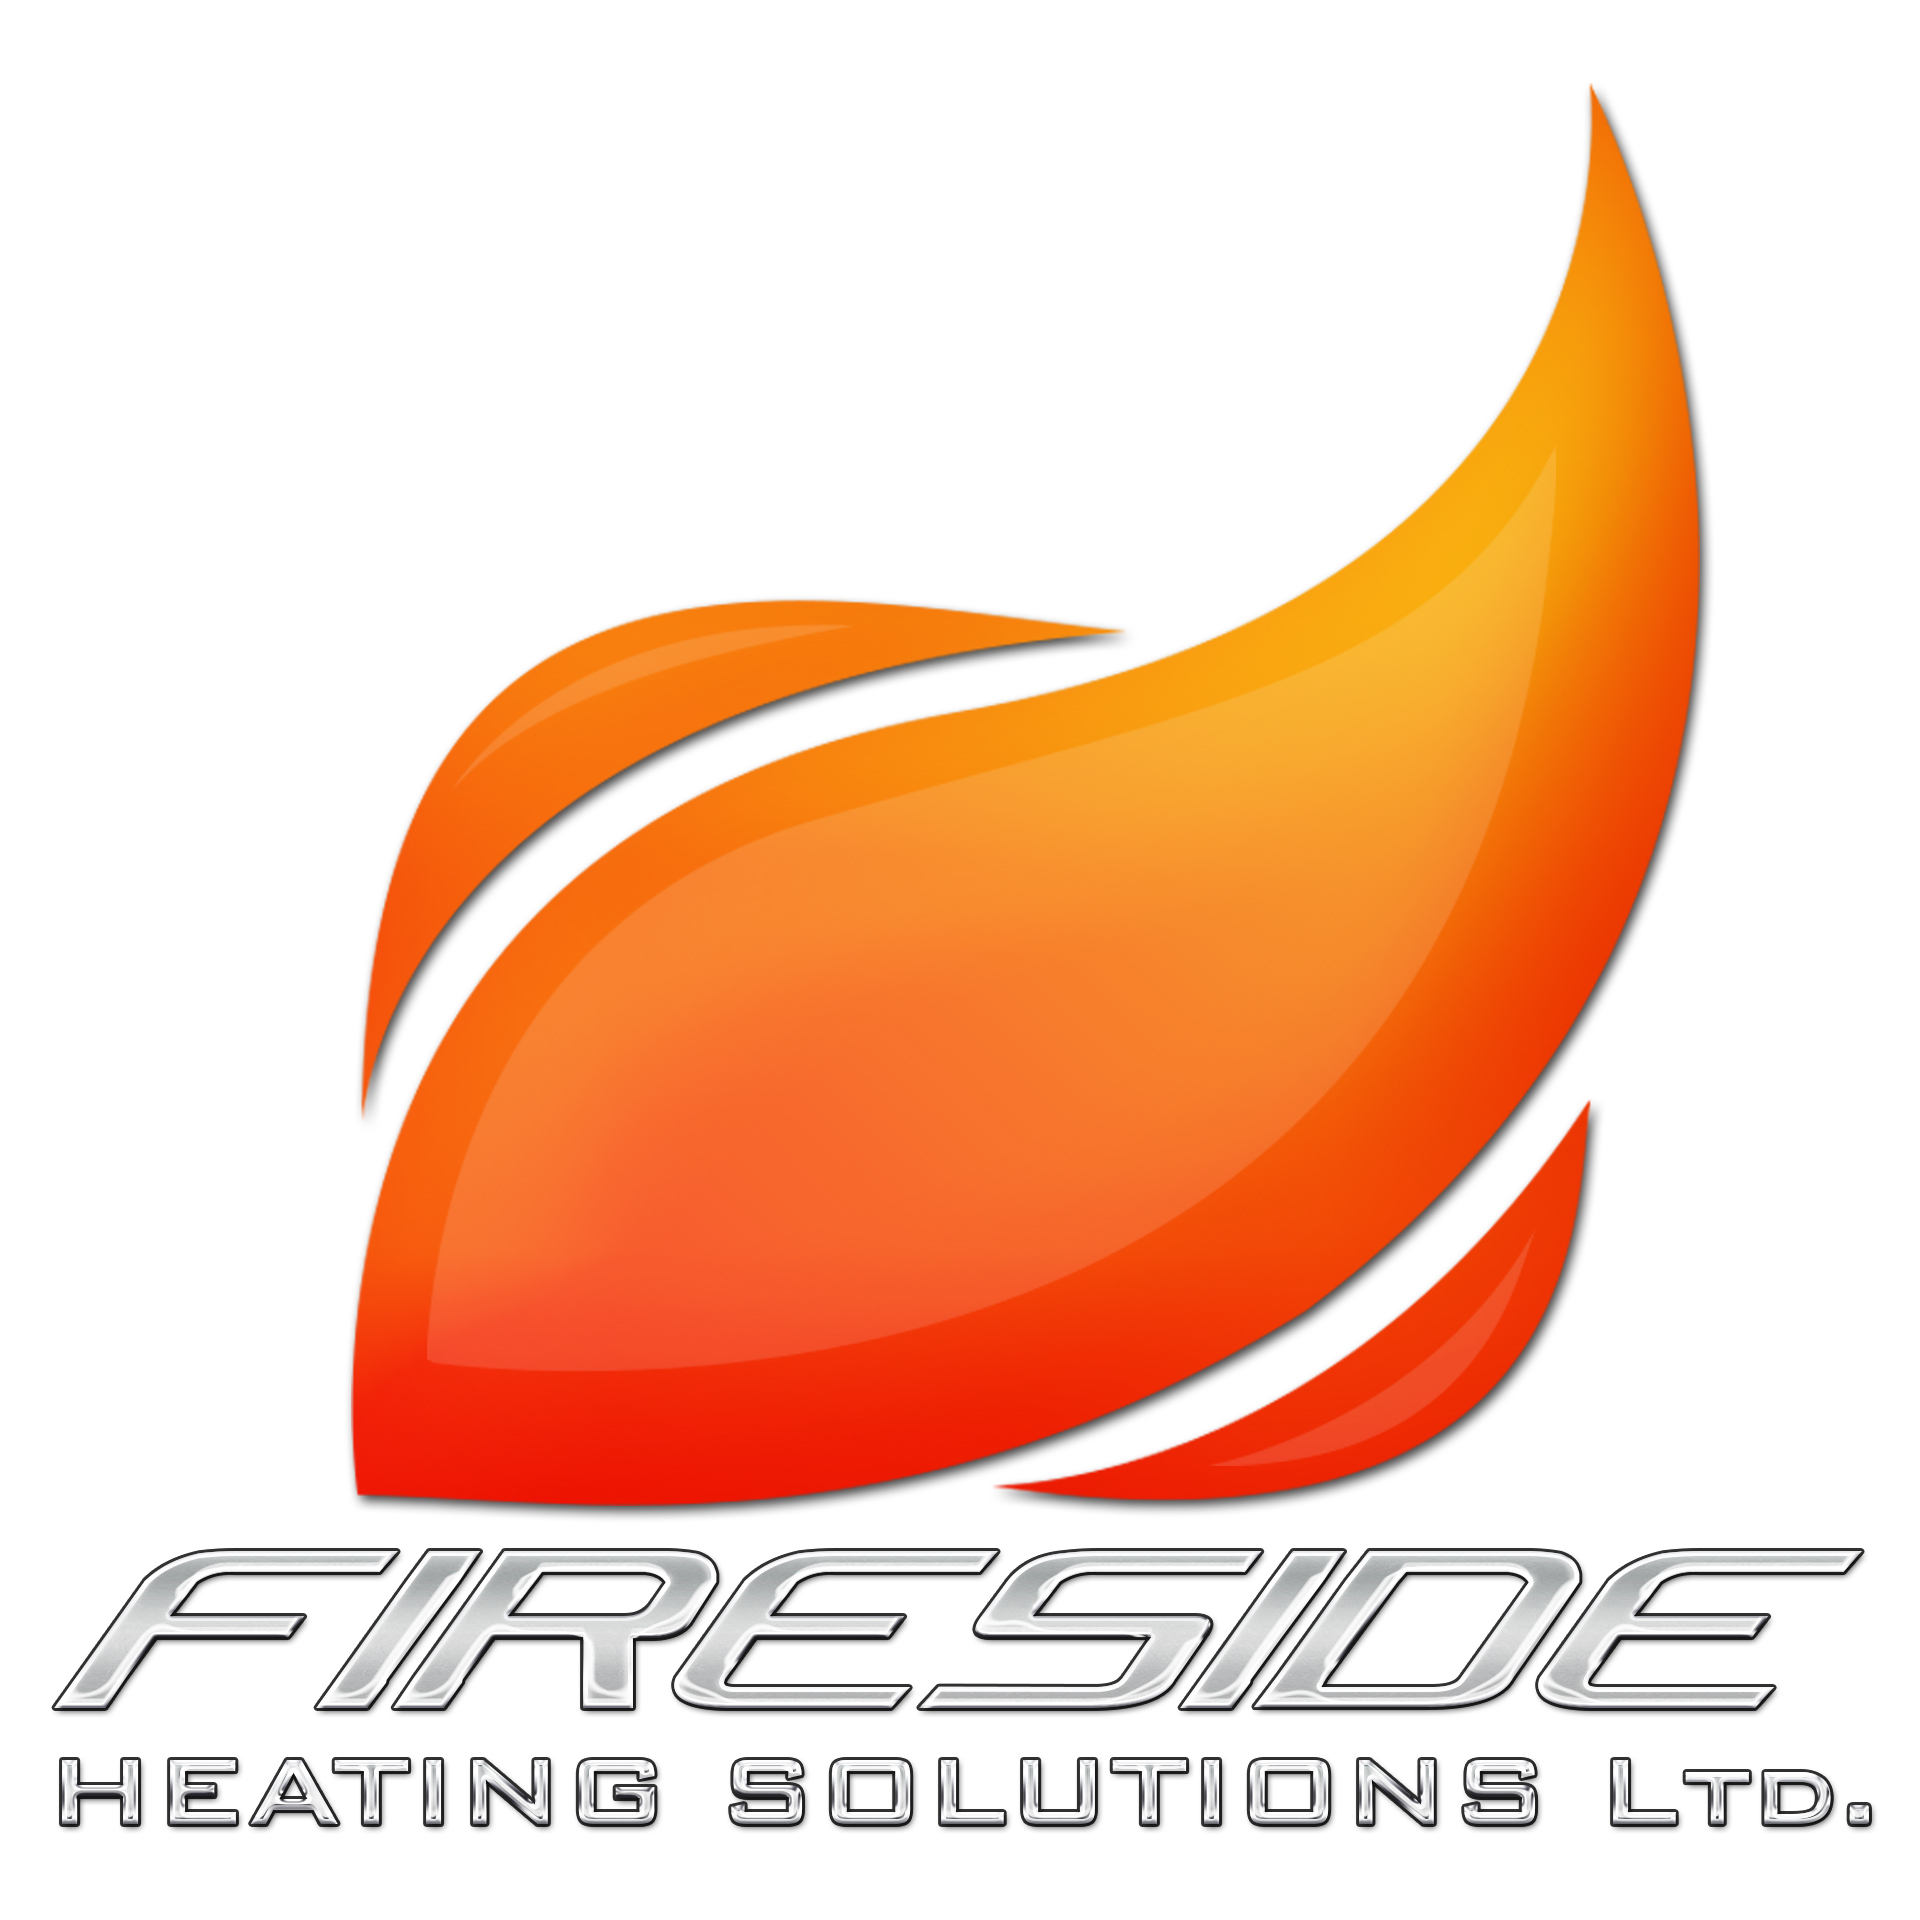 Logo Design by chAnDOS - Entry No. 120 in the Logo Design Contest Creative Logo Design for Fireside Heating Solutions Ltd..